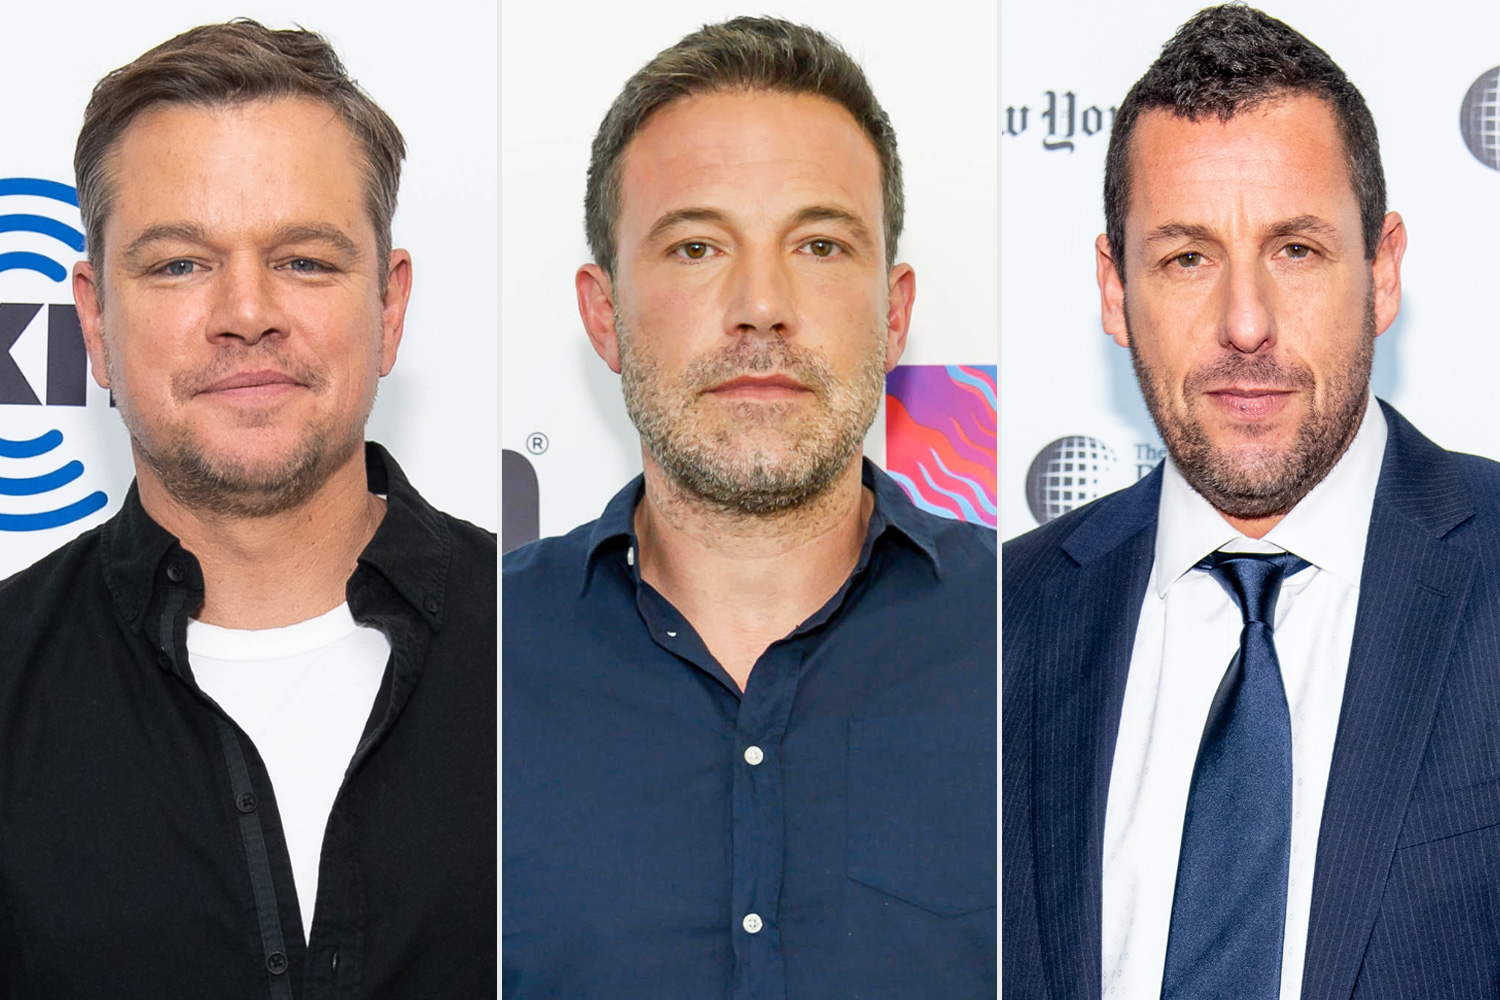 Matt Damon, Ben Affleck, Adam Sandler, Tom Brady and More Team Up for Charity Poker Game